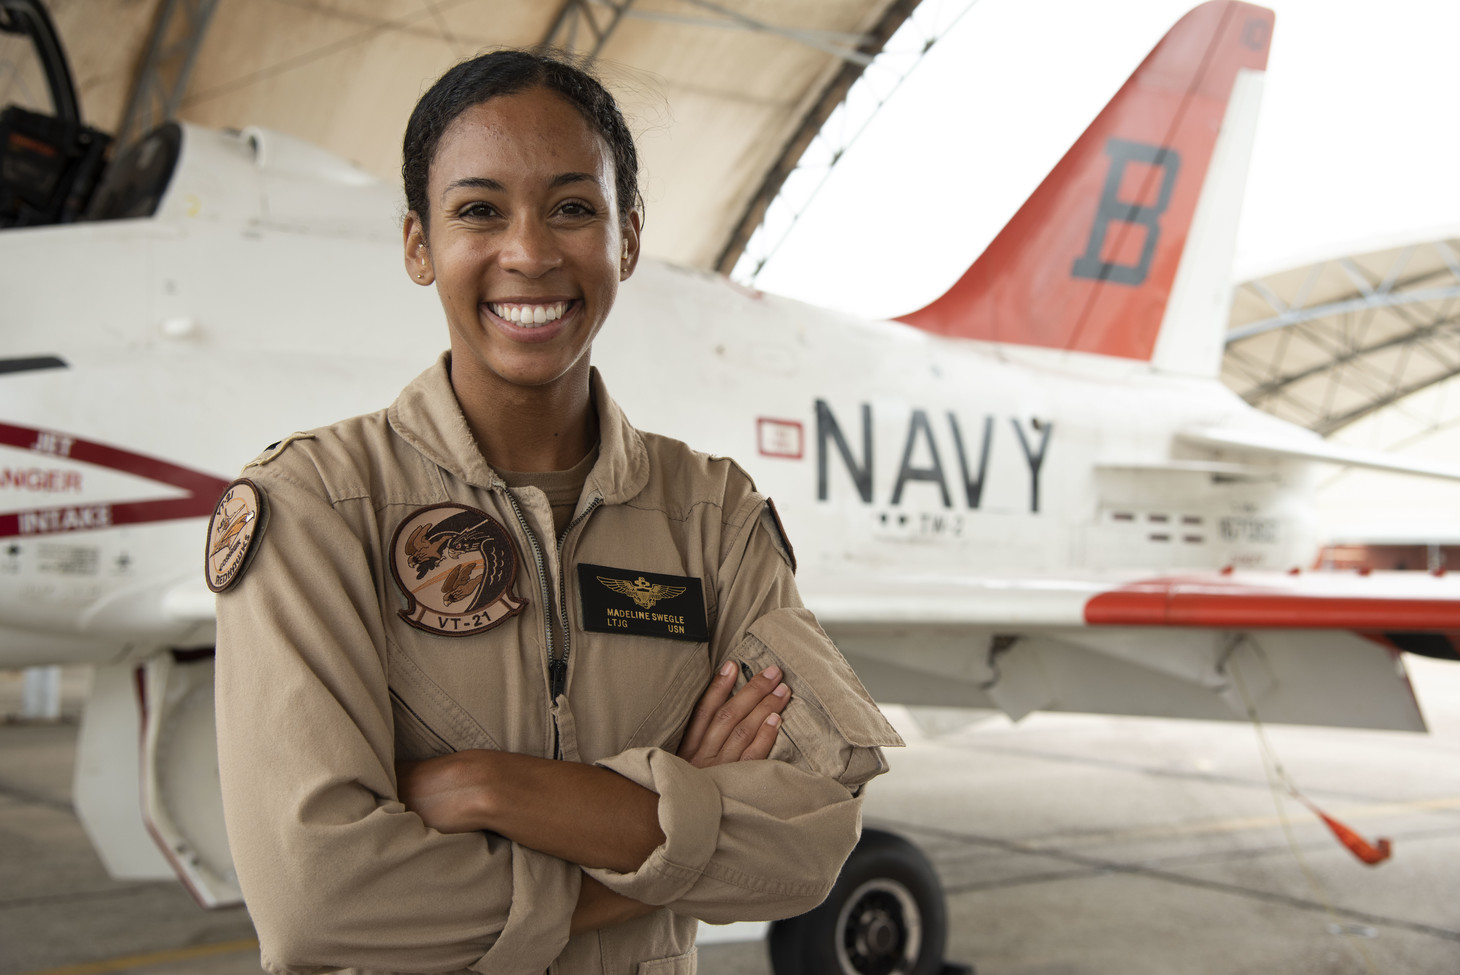 LTJG Madeline Swegle, U.S. Navy's first Black female tactical jet aviator